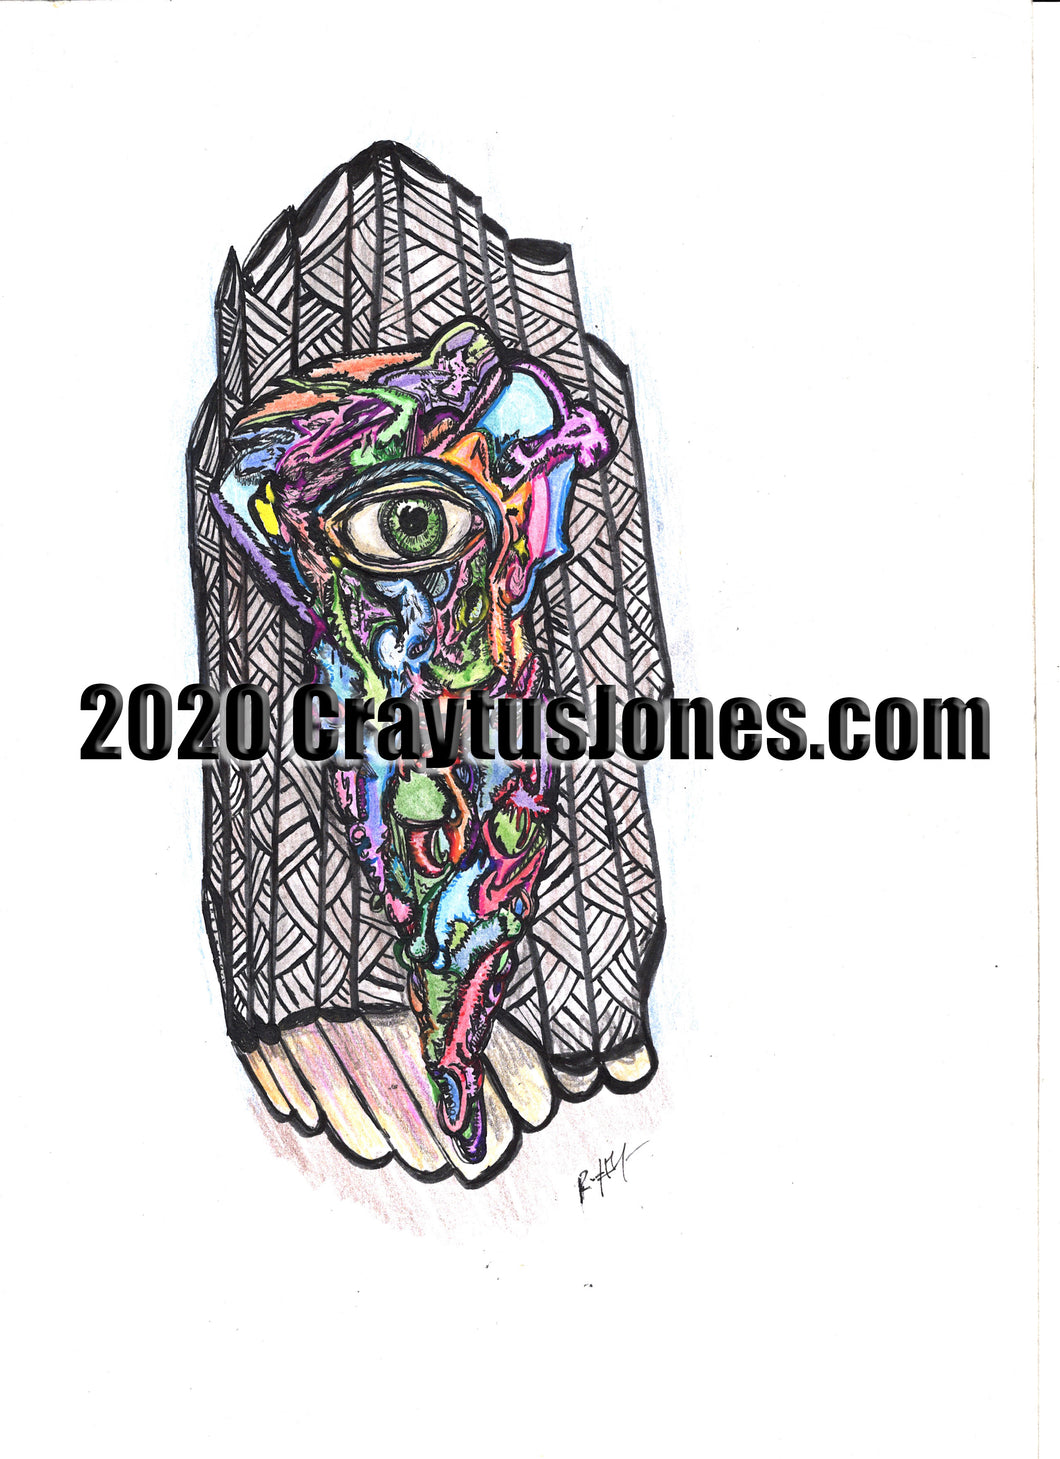 Craytus Jones Drawing Pen and Ink with Marker and Pencil Eye with Texture quarantine art wall decor graphic design